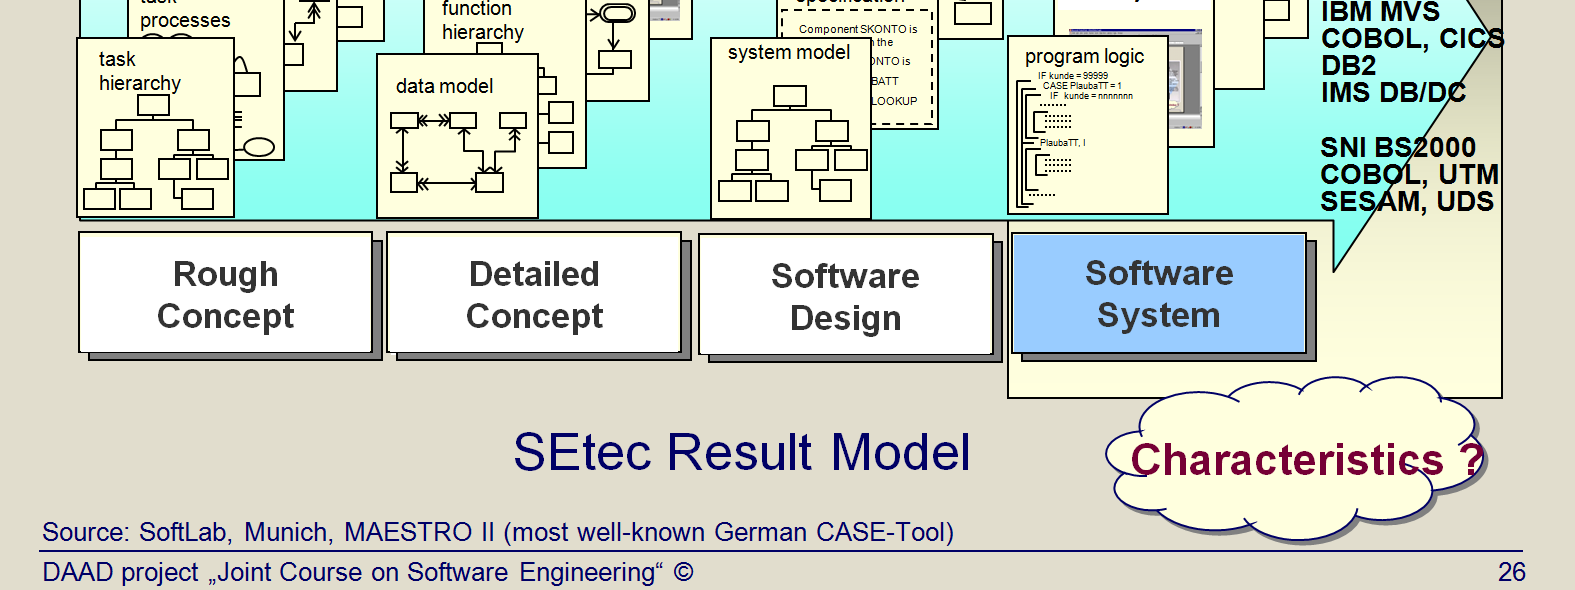 Title: Phases in CASE-Tool MAESTRO II (Topic03 Slide 25). This phase model is connected with a particular CASE tool MAESTRO II the most popular German CASE tool during the last two decades.